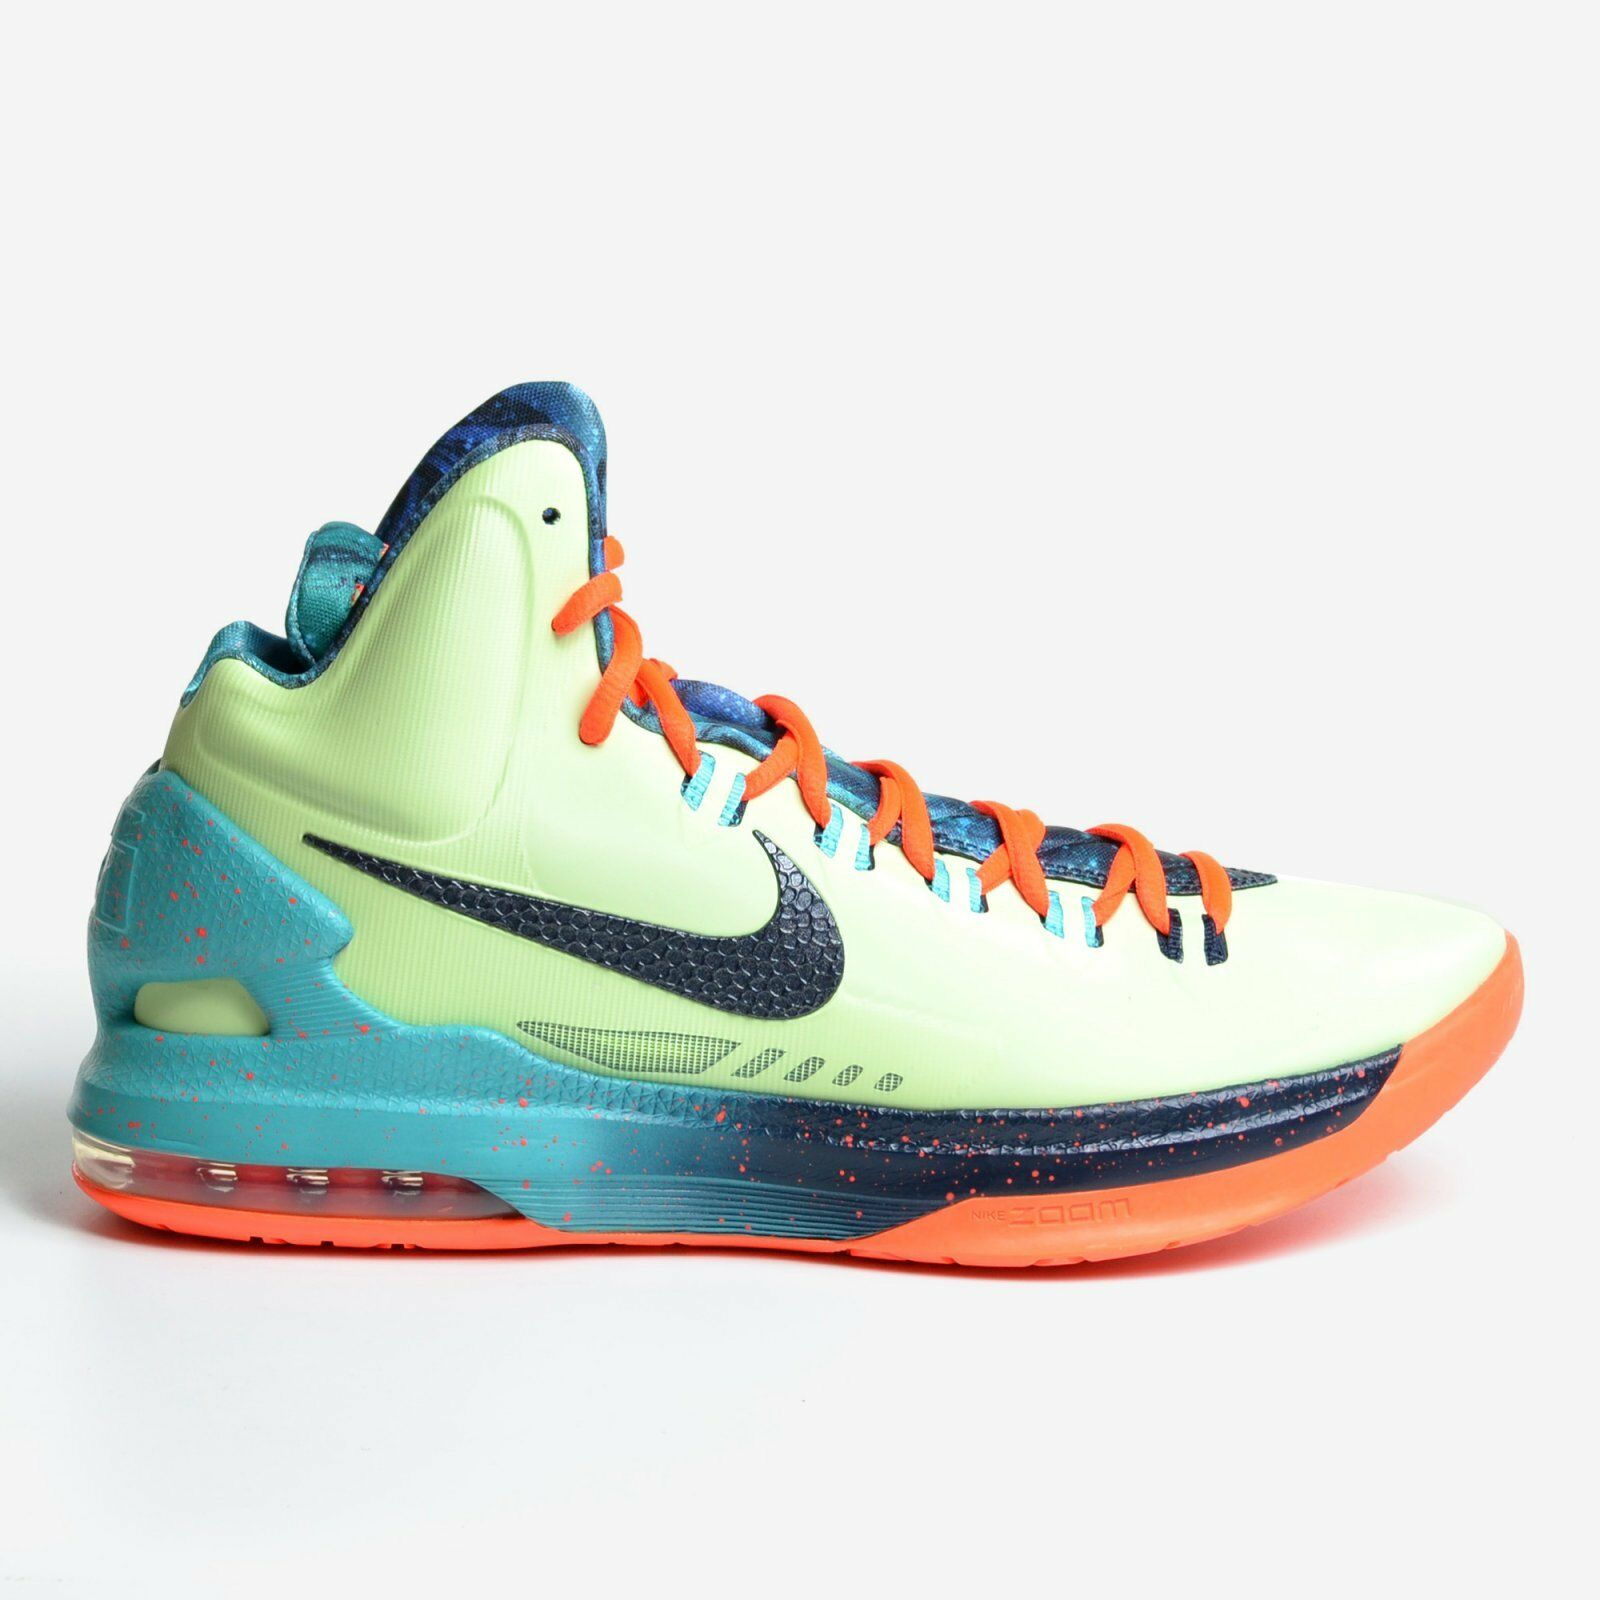 Nike Kd 5 V Allstar Area 72 Lime 2013 Asg All Star Game Kevin Durant 583111-300